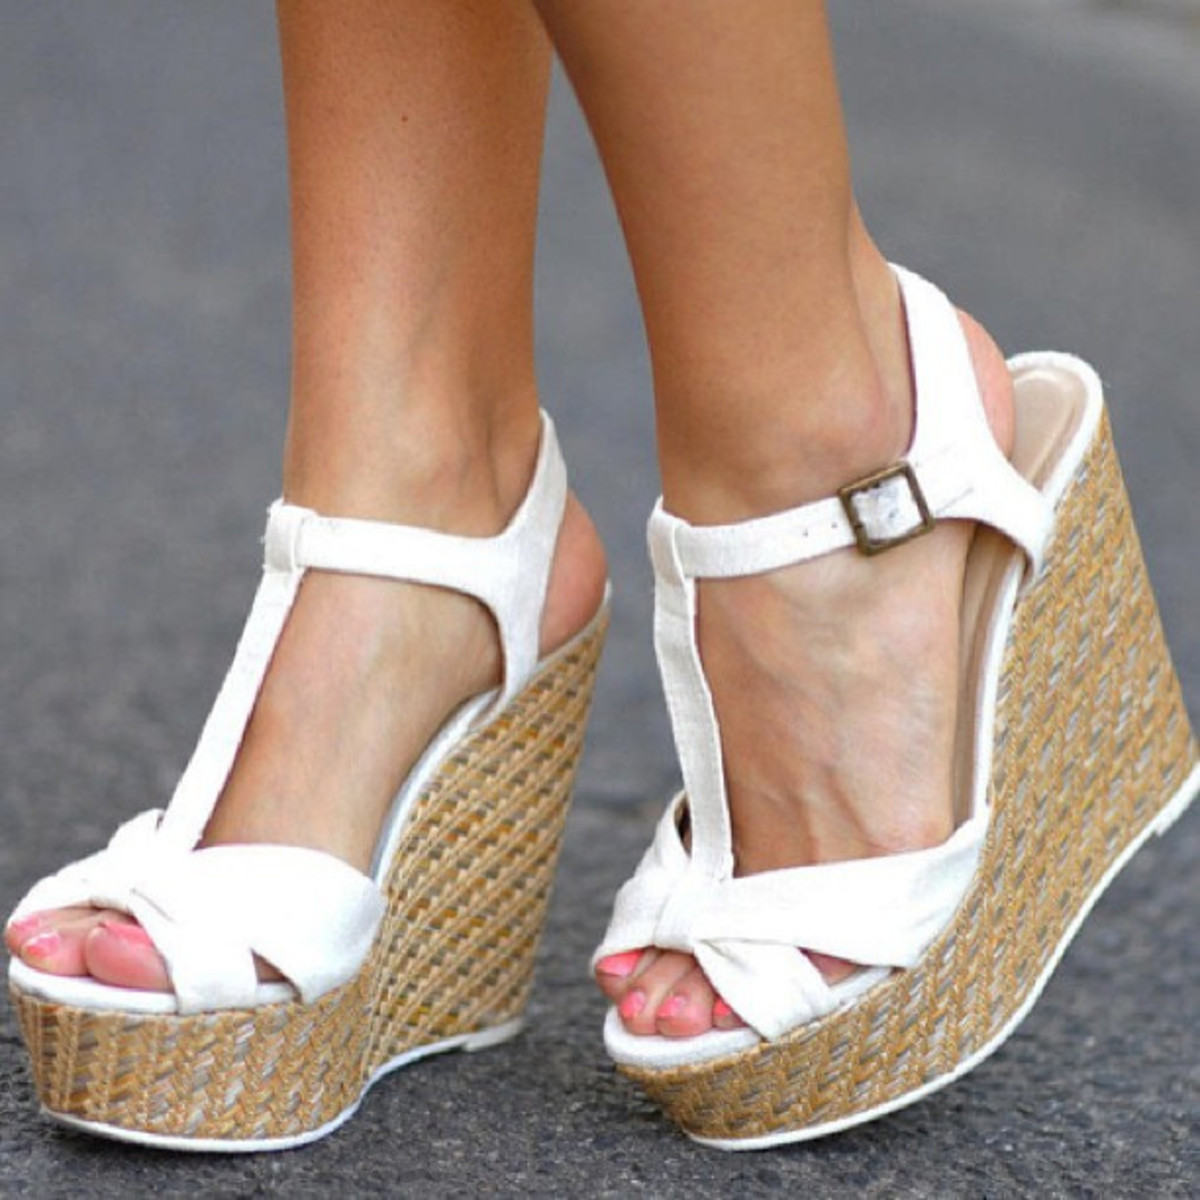 Wedges are a cute addition to any Spring/Summer 50s shoe collection.